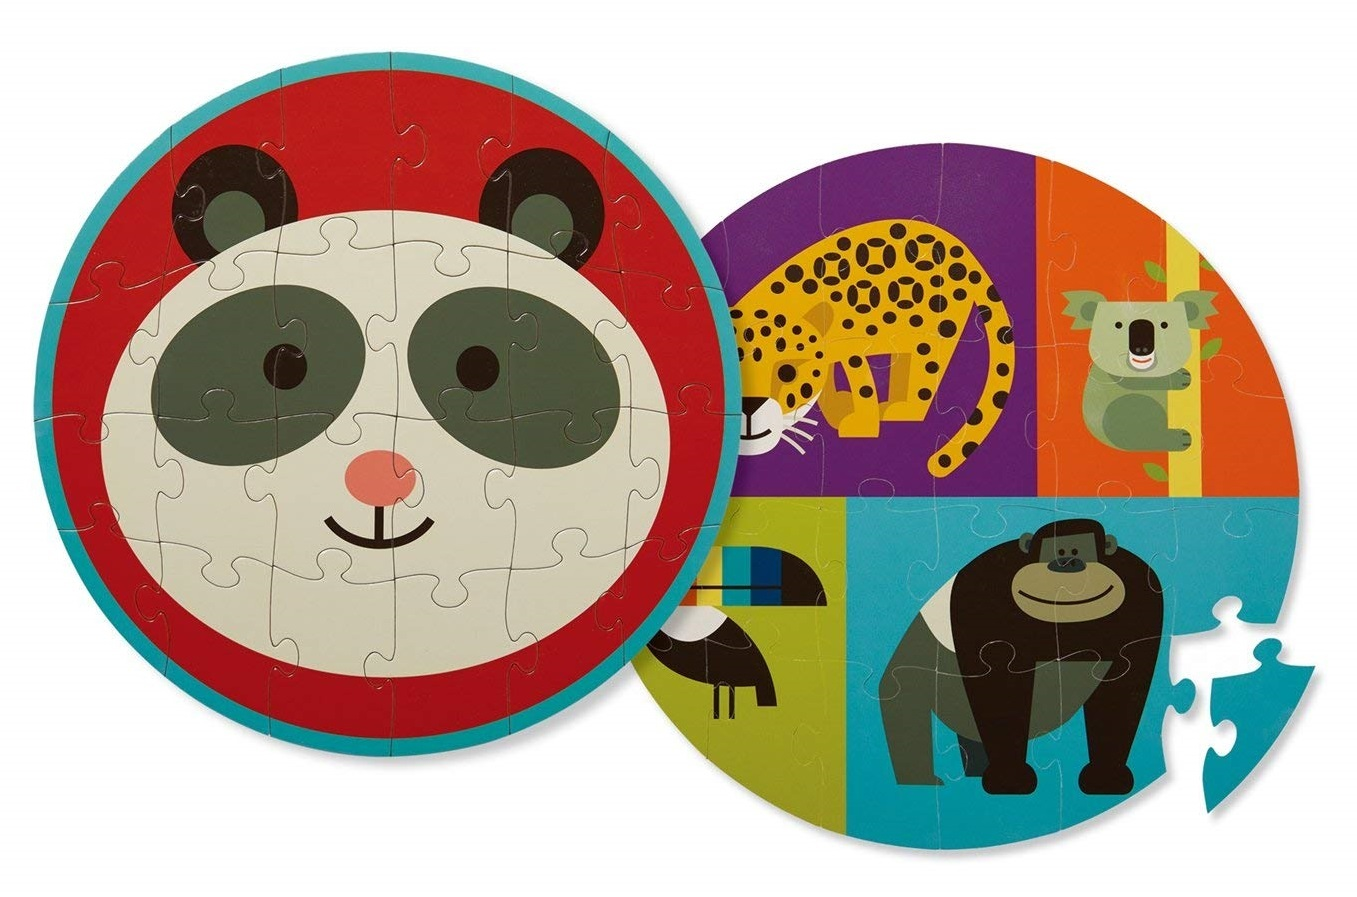 Panda Friends - Two-Sided Puzzle image